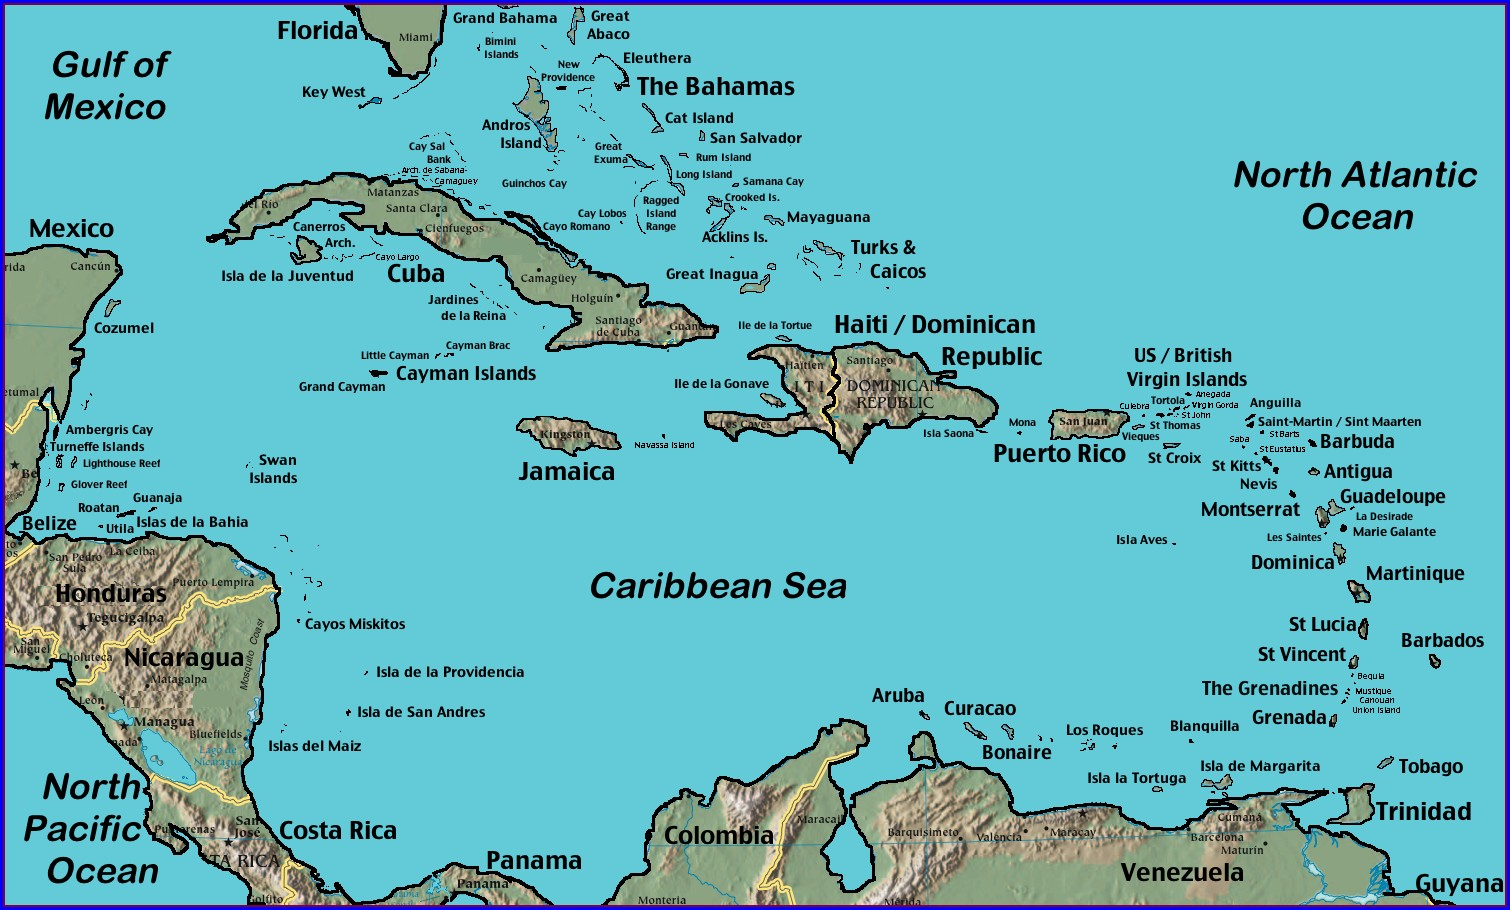 Royal Caribbean Map Of Western Caribbean